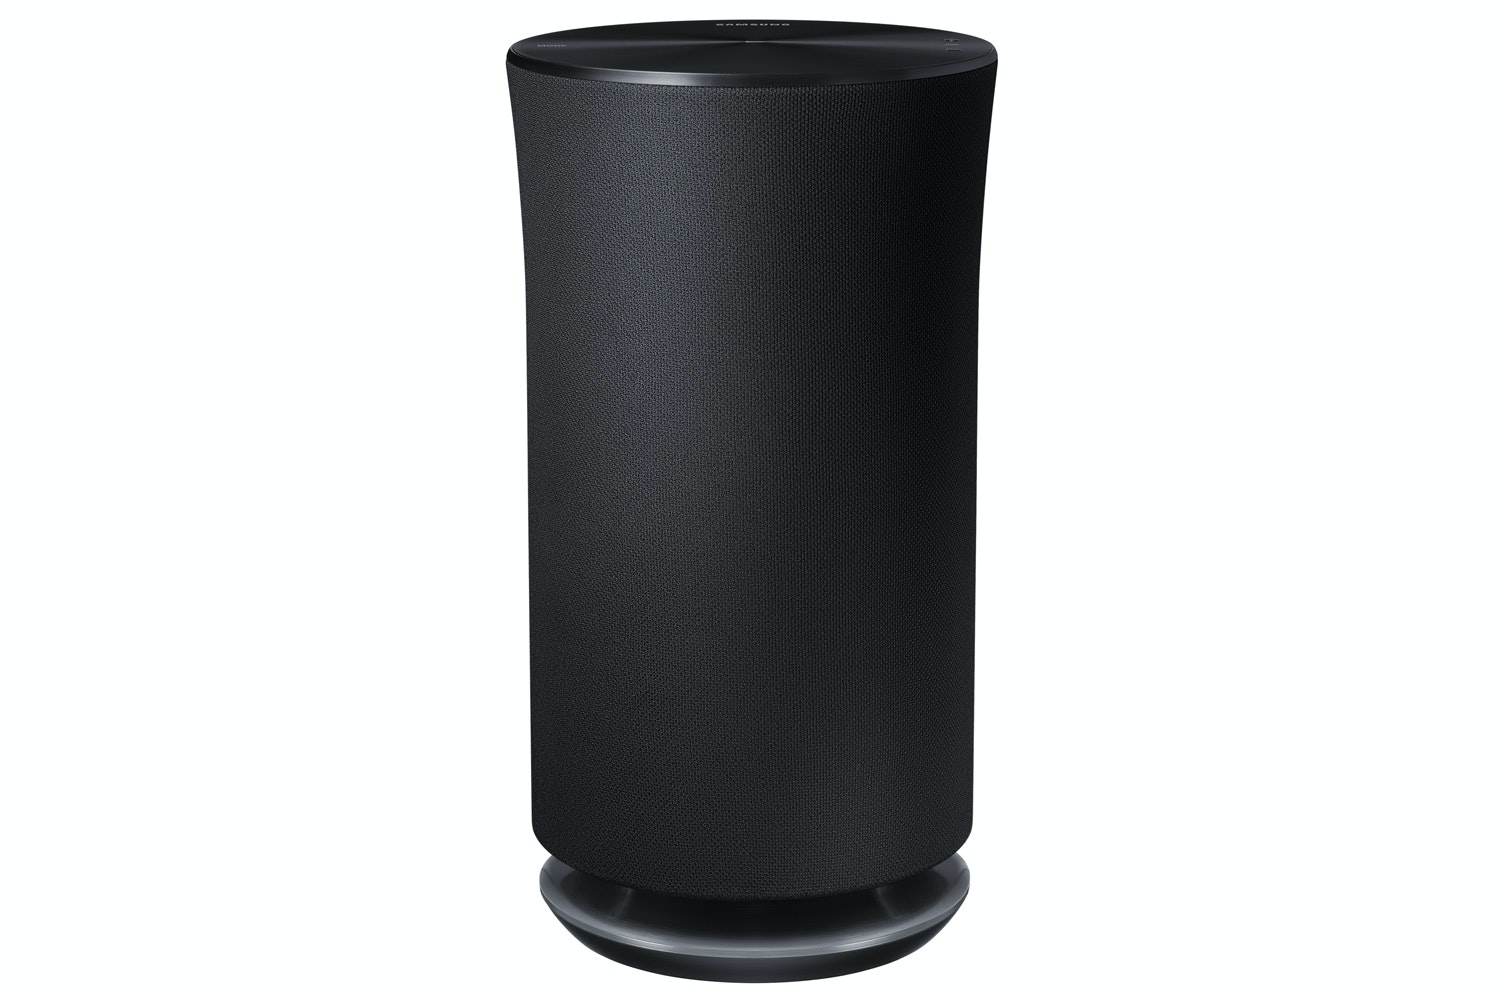 Samsung Wireless Smart Speaker | Black